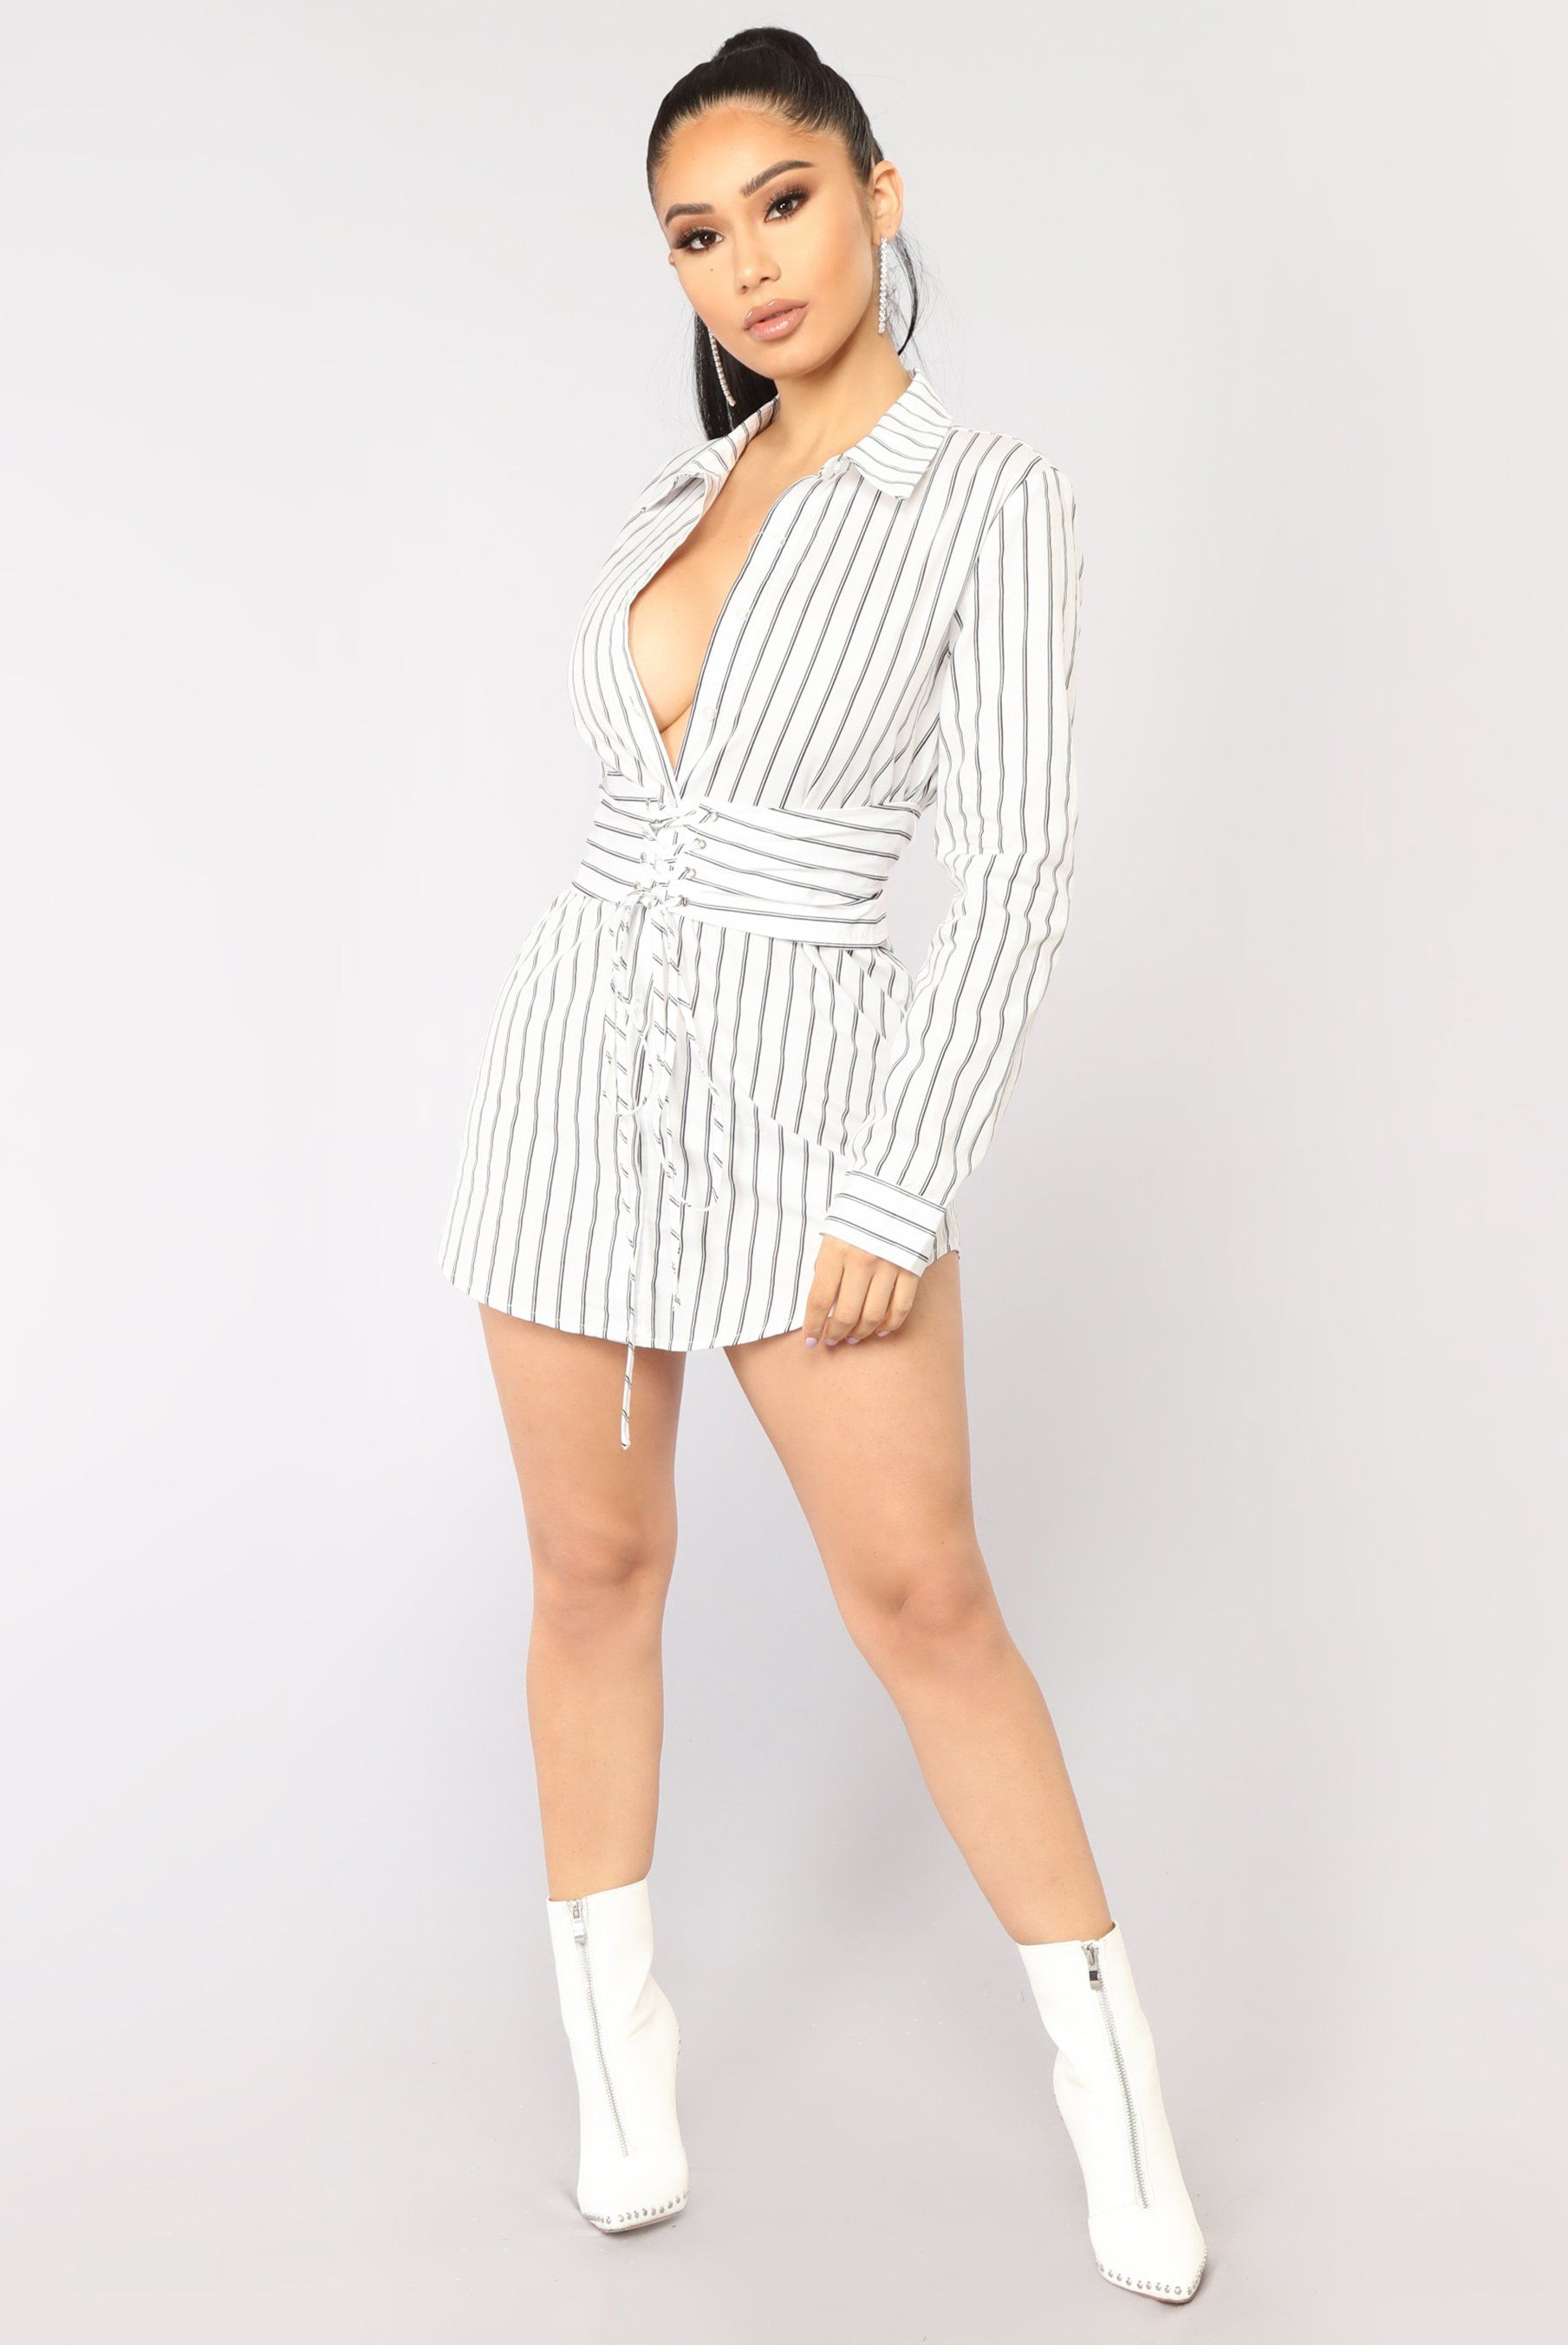 afc6de34f53a29 Women S Fashion Express Shipping. Available In White And Navy Shirt Dress  Striped Print Button Down Corset Waist Collared 100% Cotton